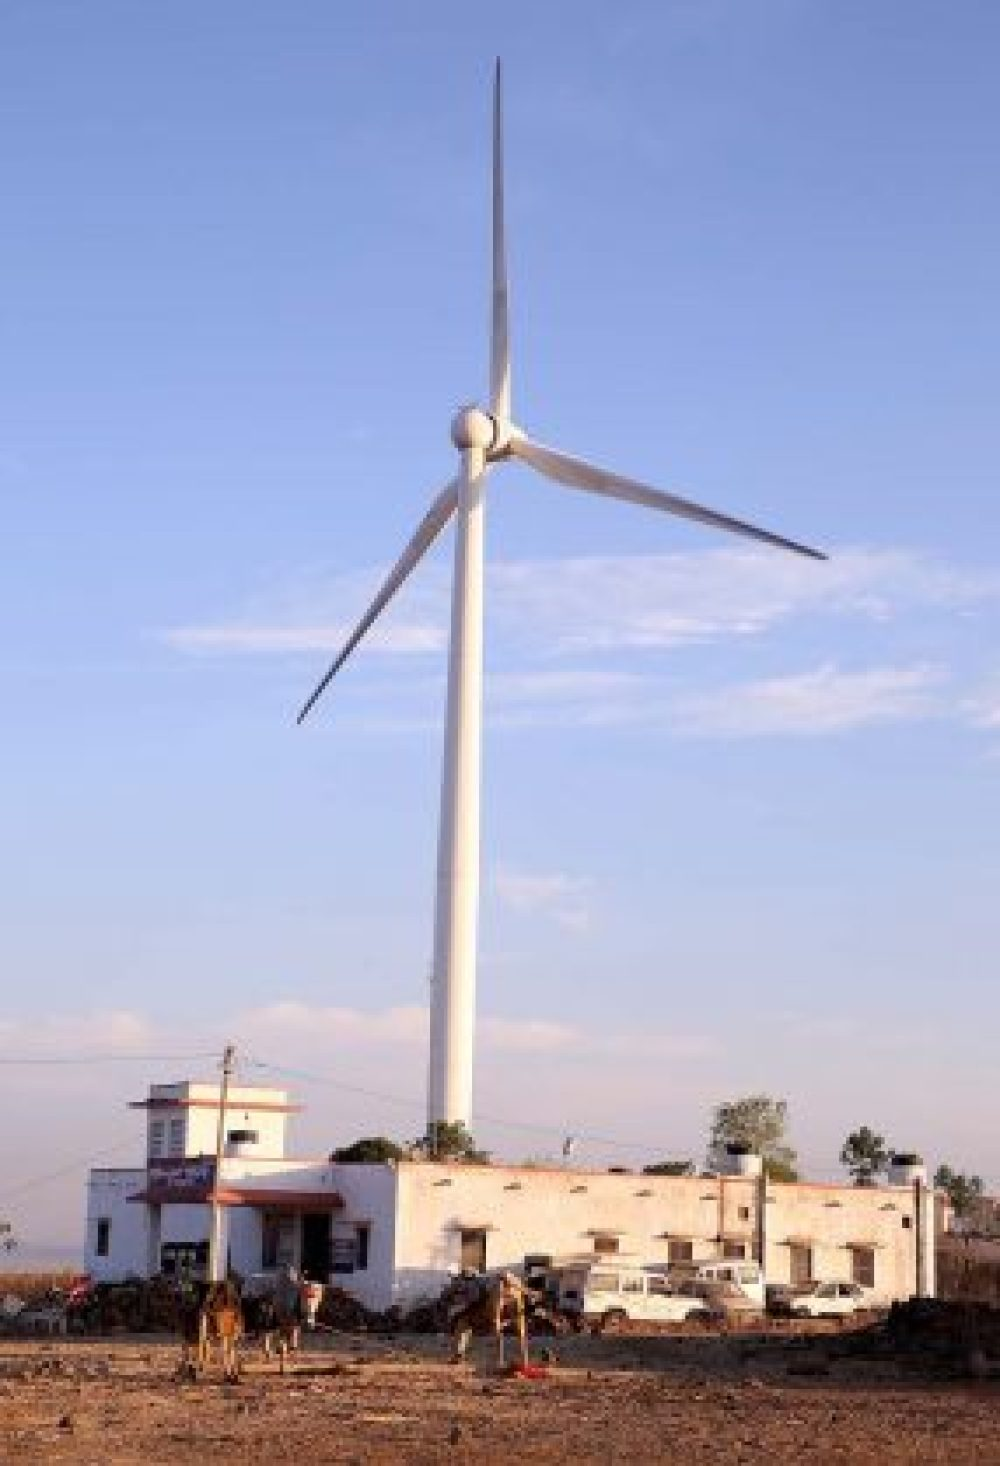 Orange Renewable, a 100% subsidiary of Singapore-based AT Holdings Pte. Ltd, has secured a 200 MW Wind Power project